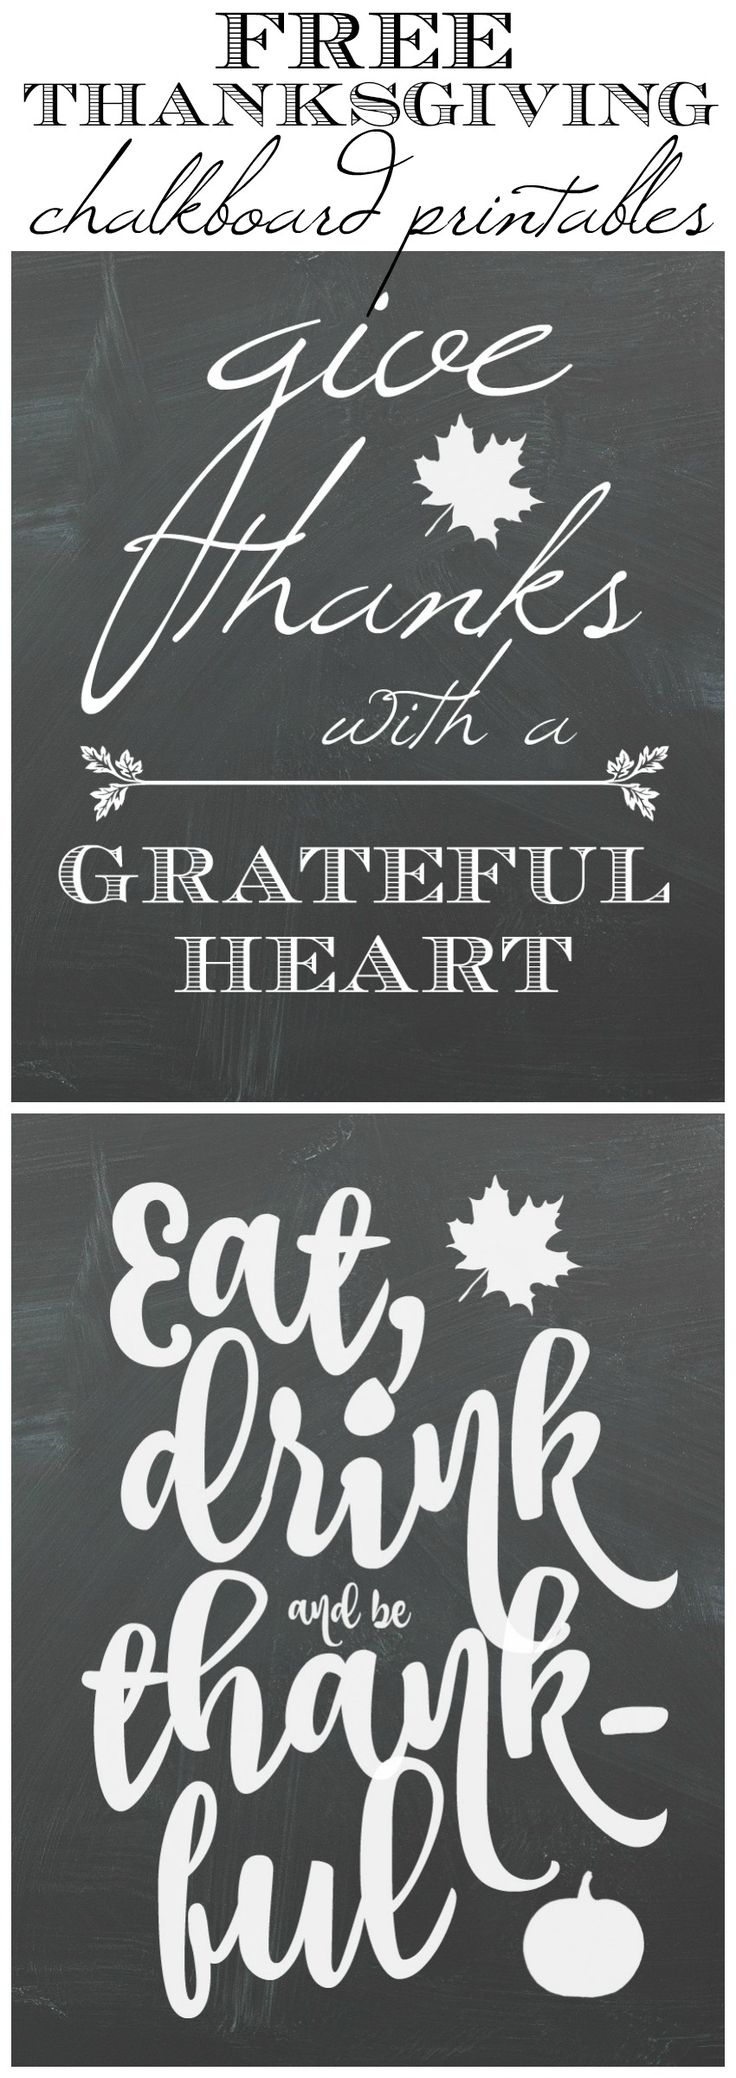 fall kitchen tour free thanksgiving chalkboard art printables - Kitchen Chalkboard Ideas